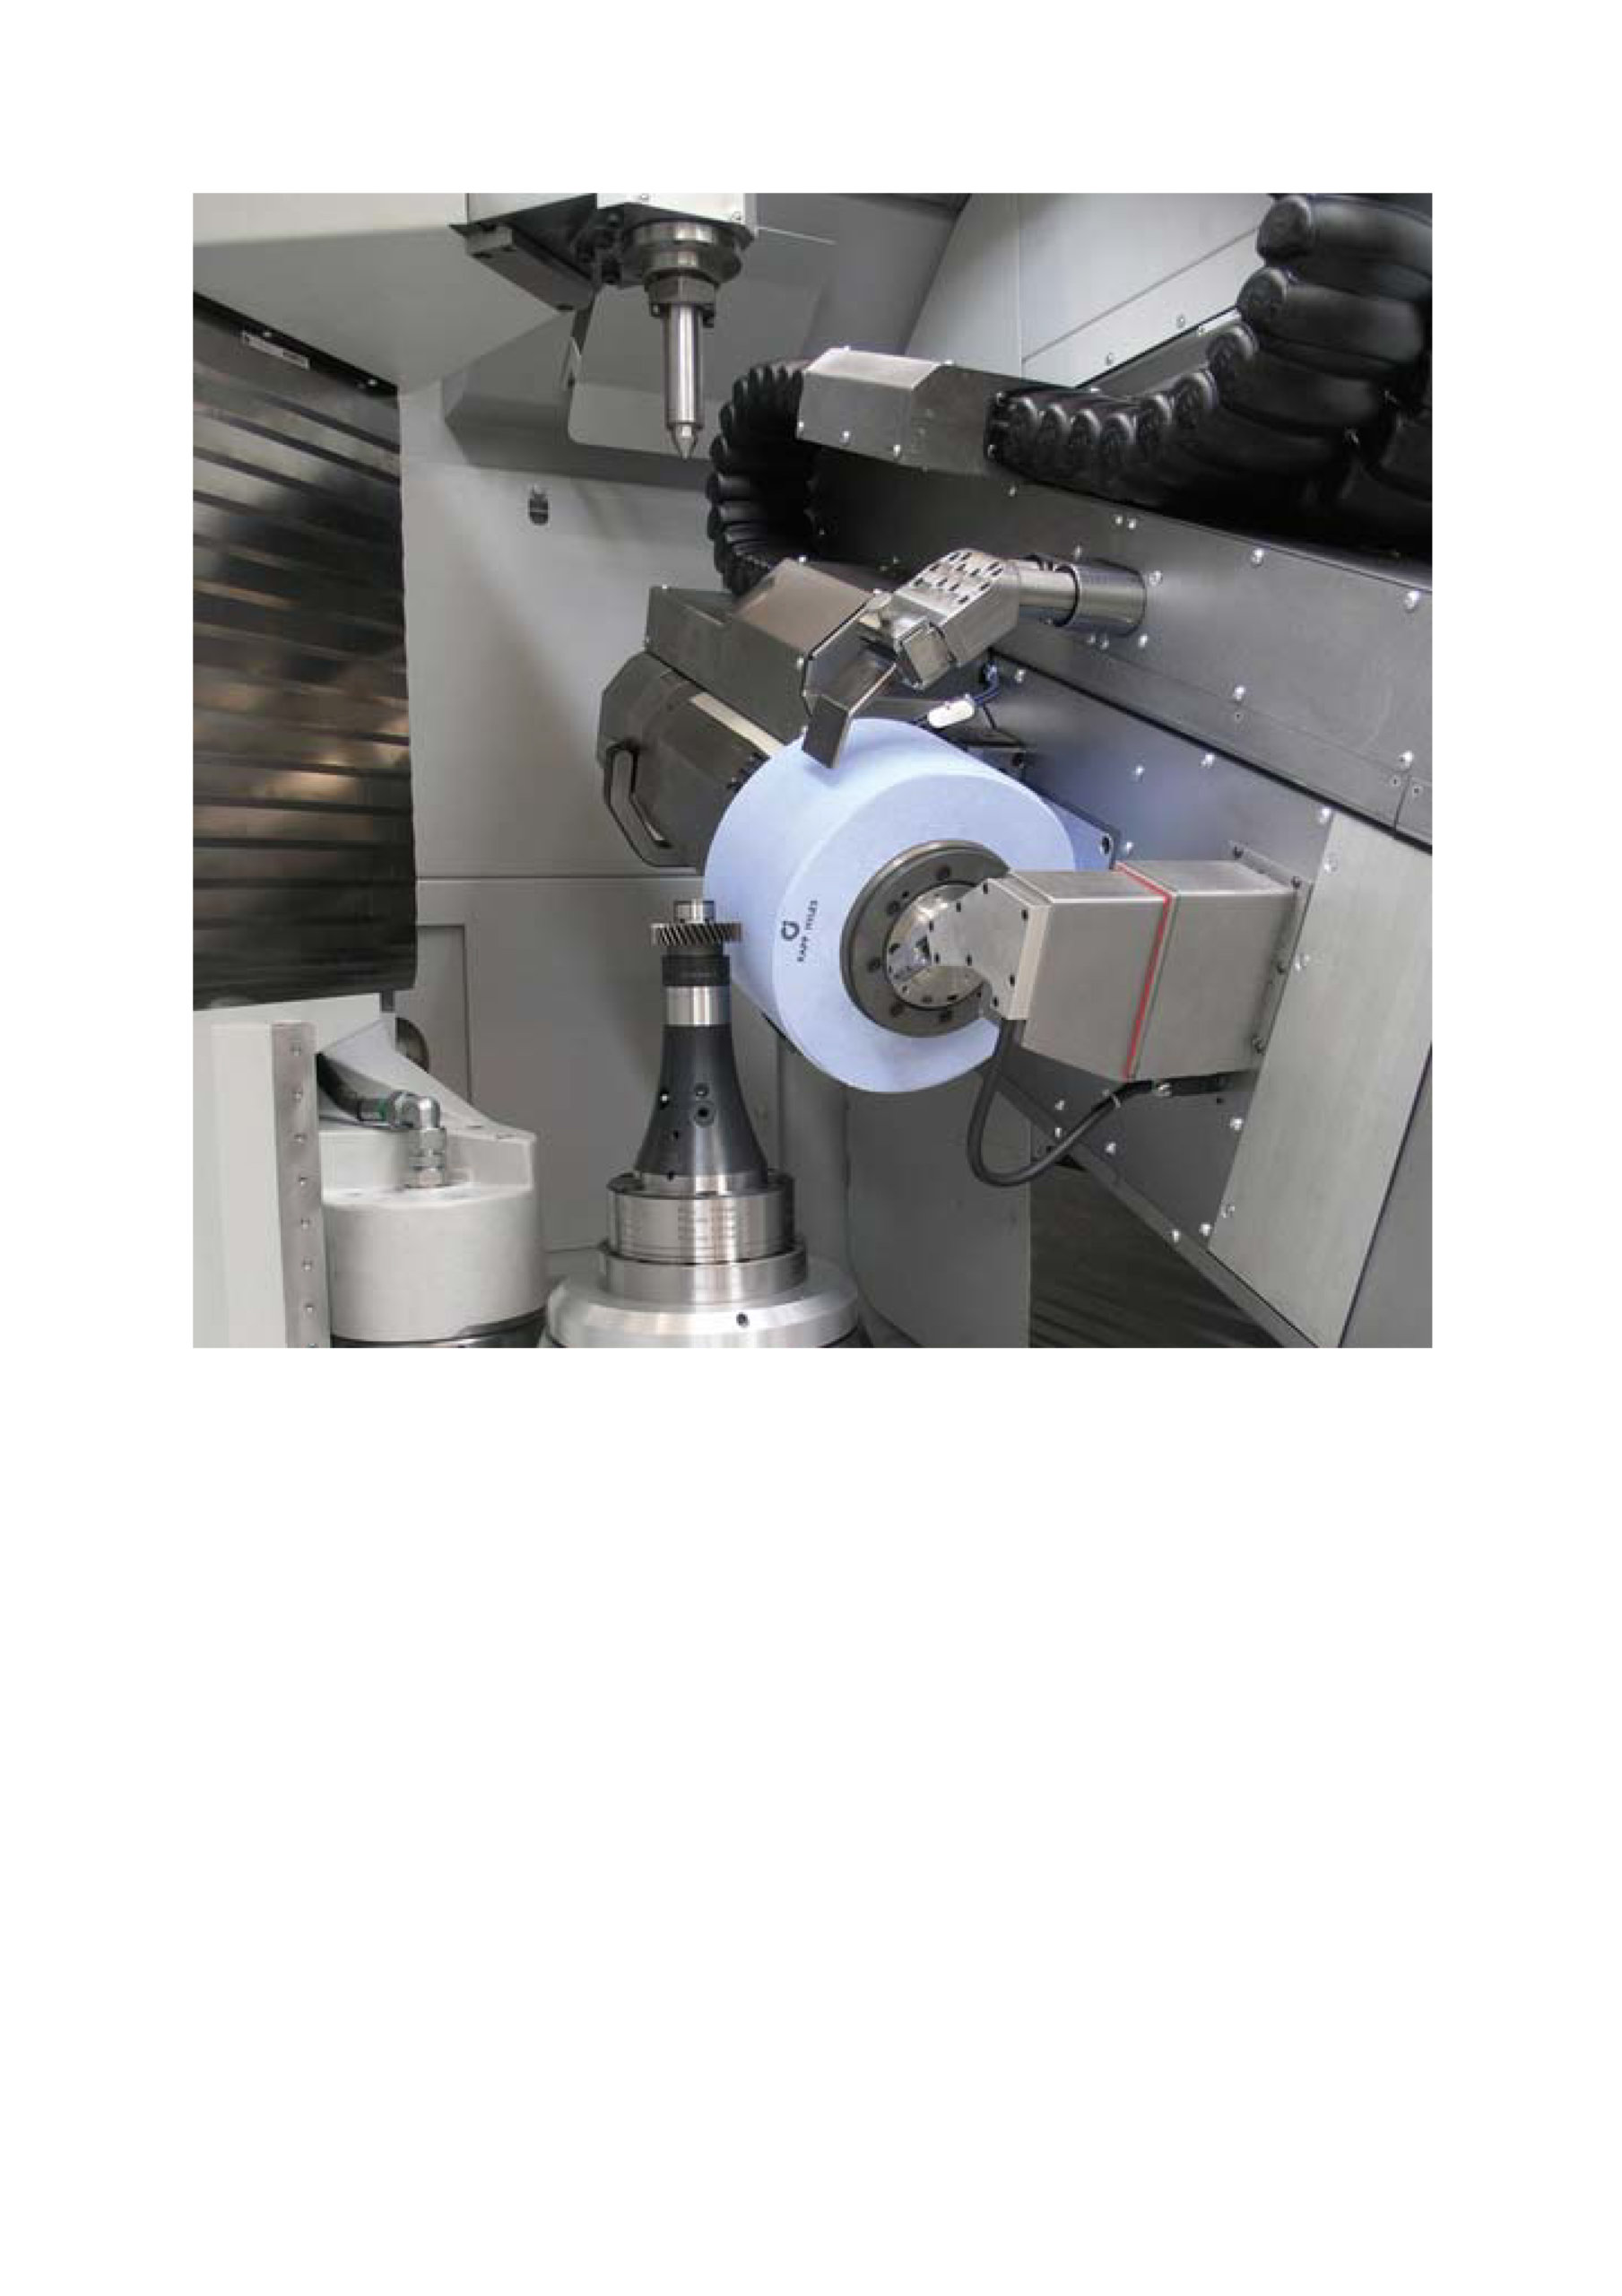 Workspace of a gear grinding machine